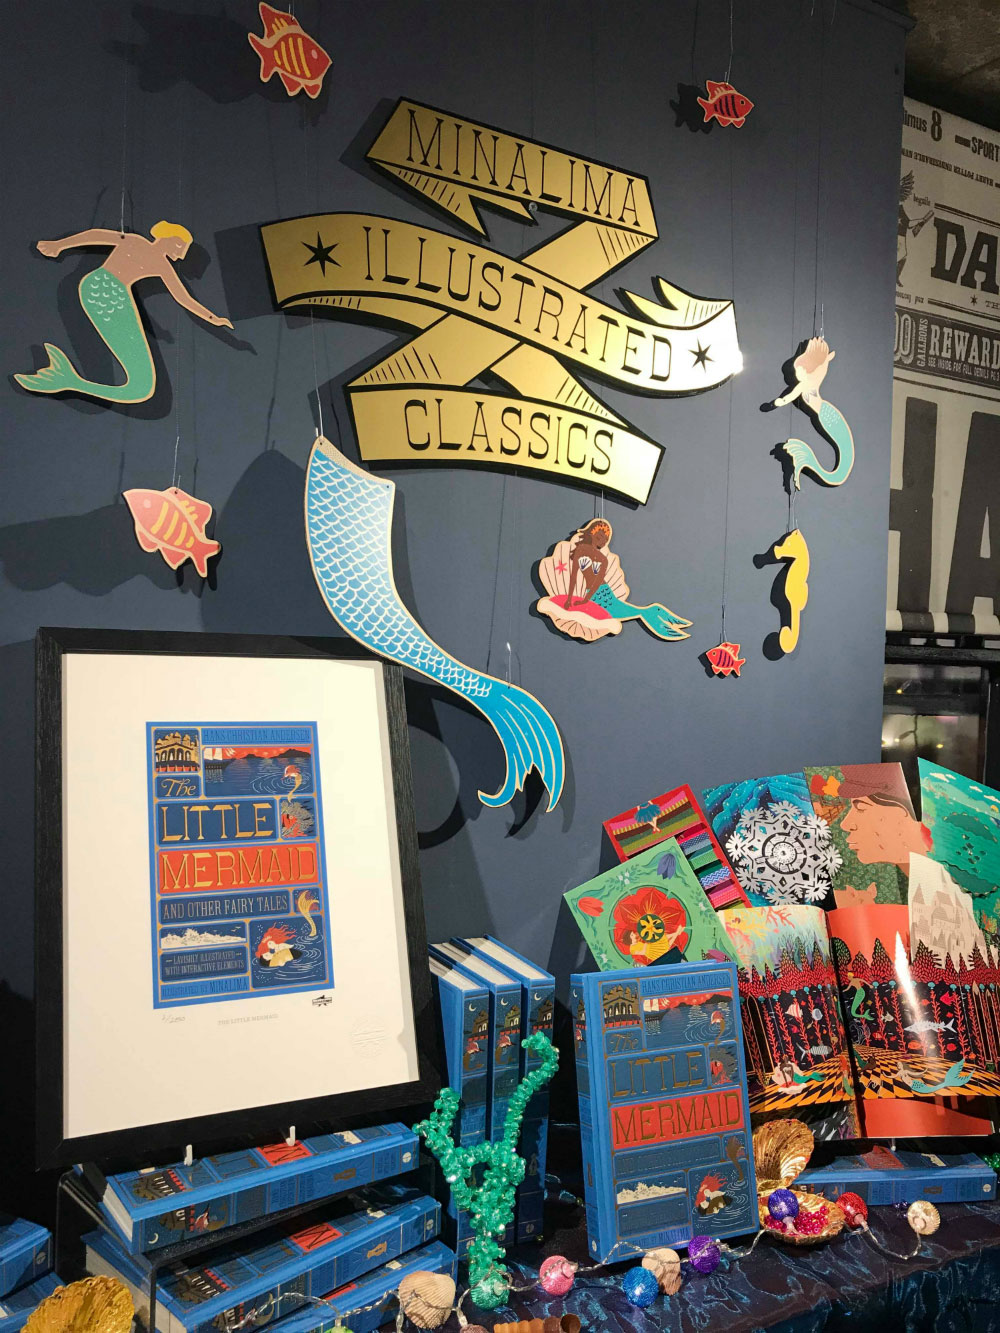 The exhibition had a special mermaid-themed display for the night, which was decorated with pages from the book, shells, and beads.